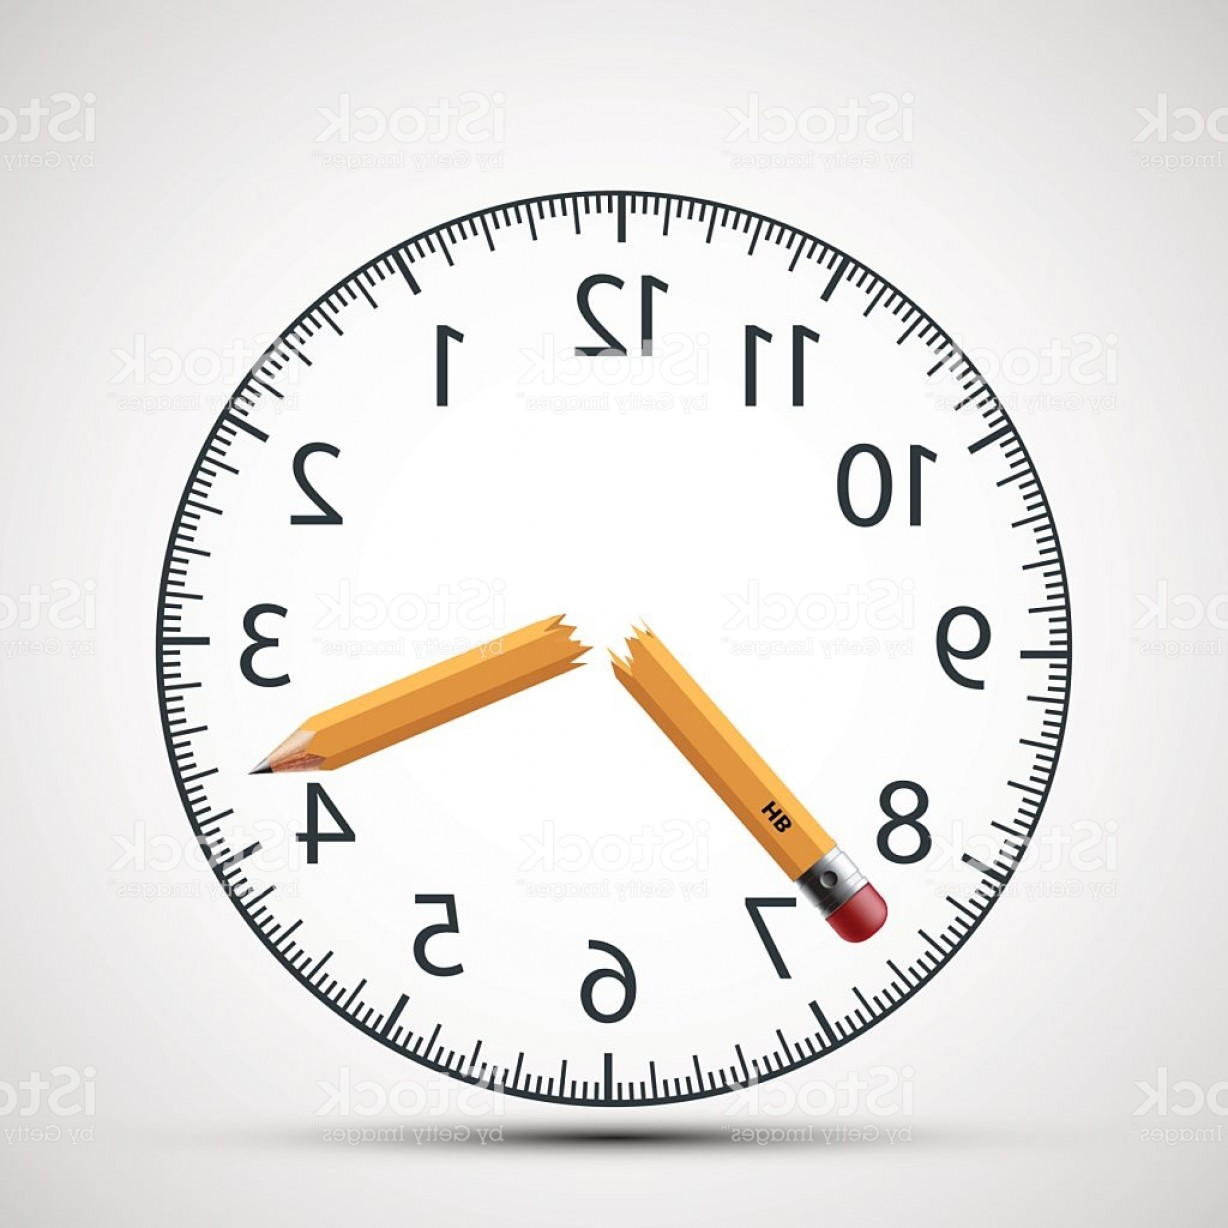 Broken Pencil Vector: Watch Dial With A Broken Pencil Nervous Tension And Stress Gm